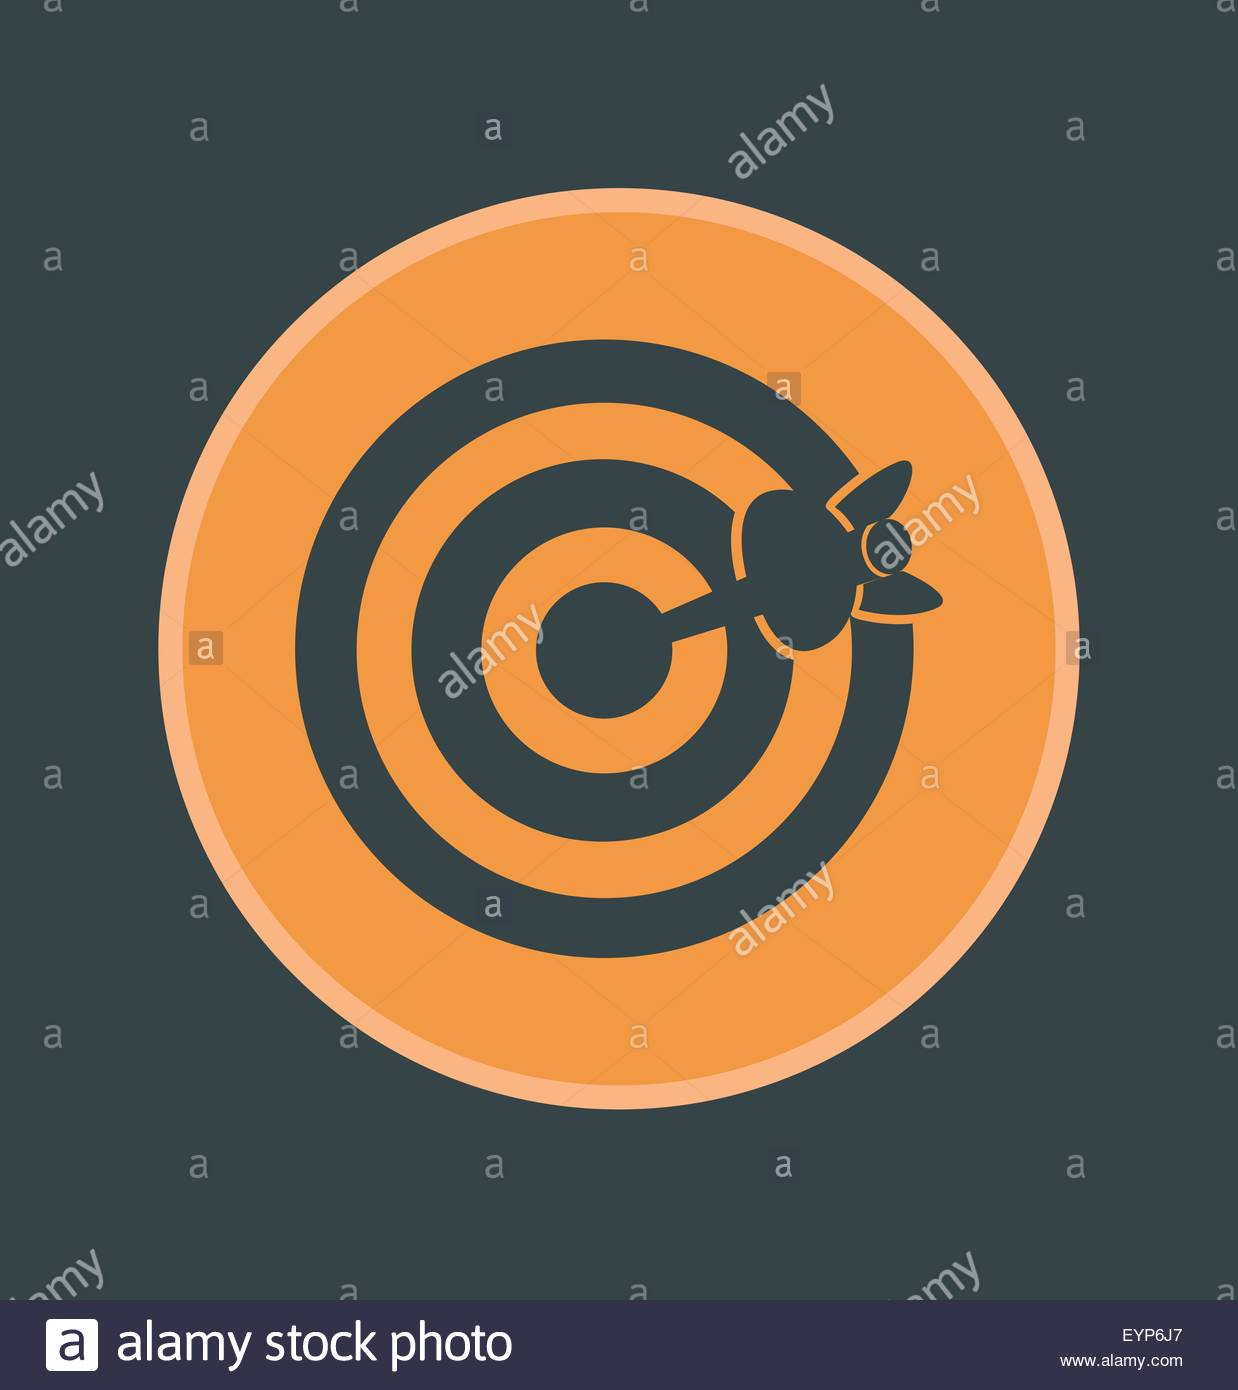 Vector illustration of accuracy icon, flat round icon - Stock Image